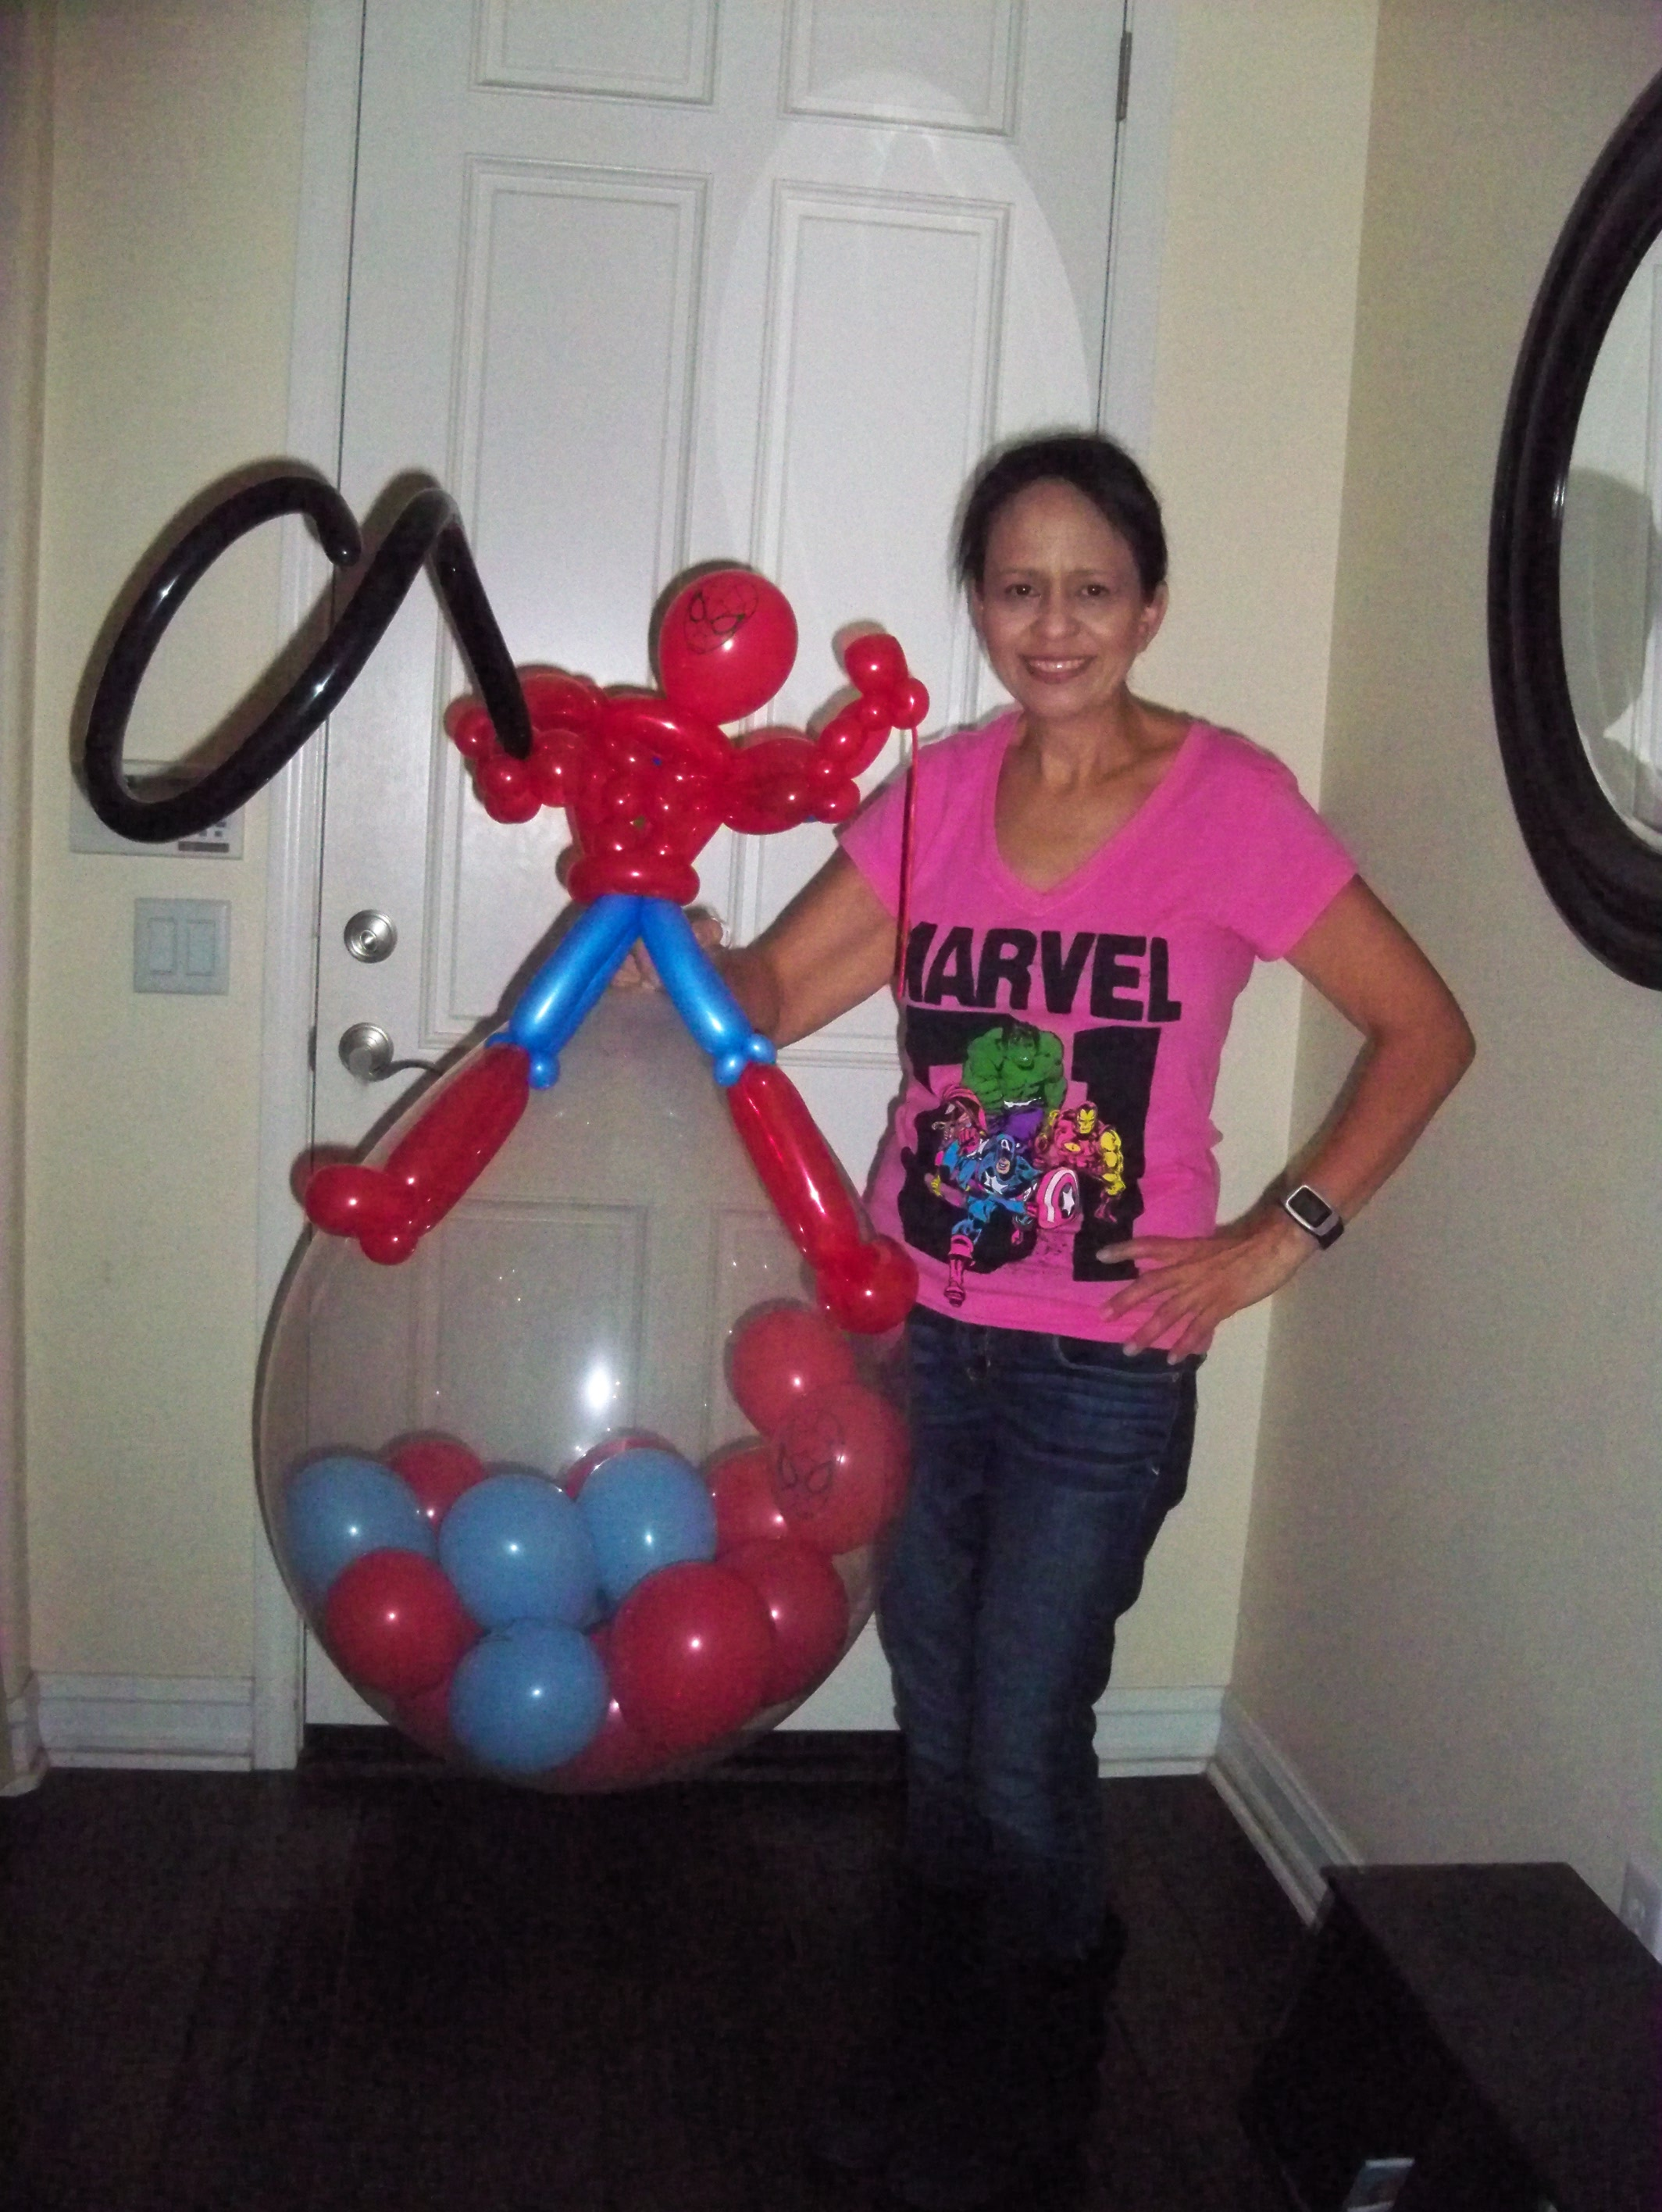 Spiderman figure and stuffed balloon